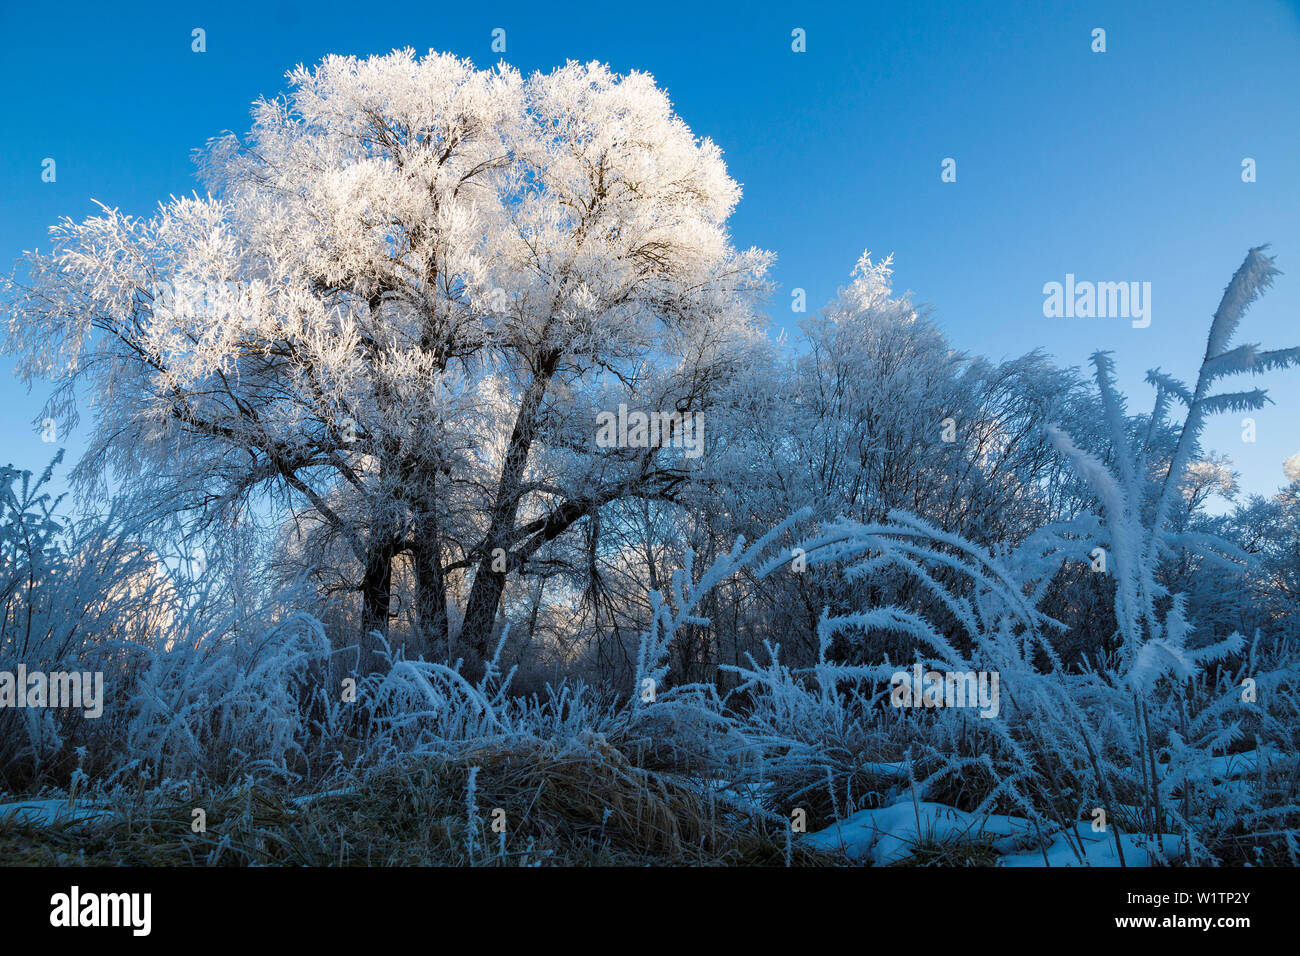 trees with whitefrost in winter, Willow, Salix spec., Upper Bavaria, Germany, Europe Stock Photo